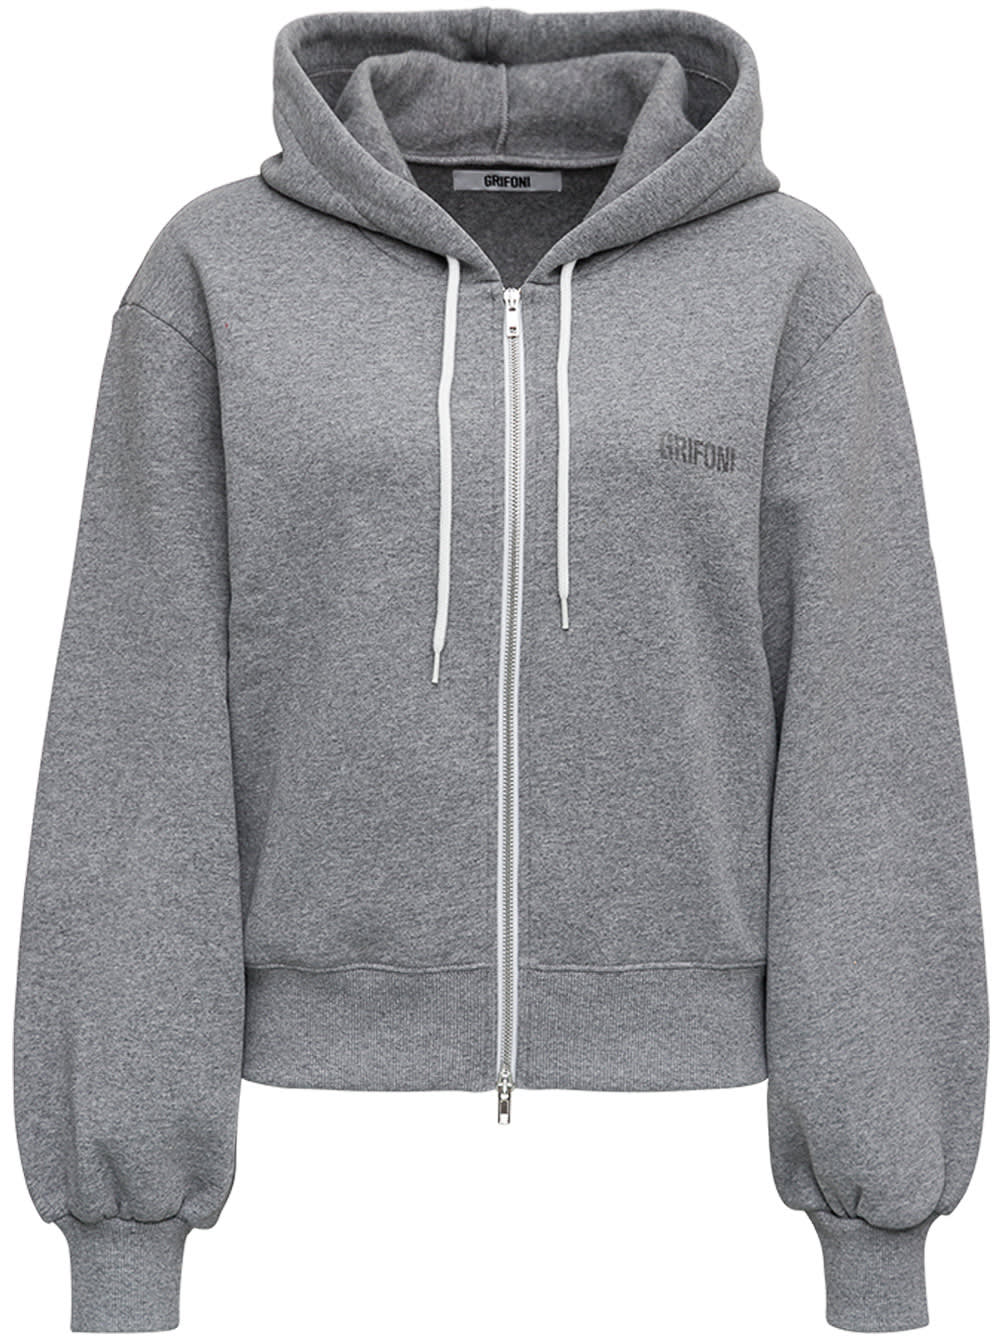 Grey Cotton Hoodie With Logo